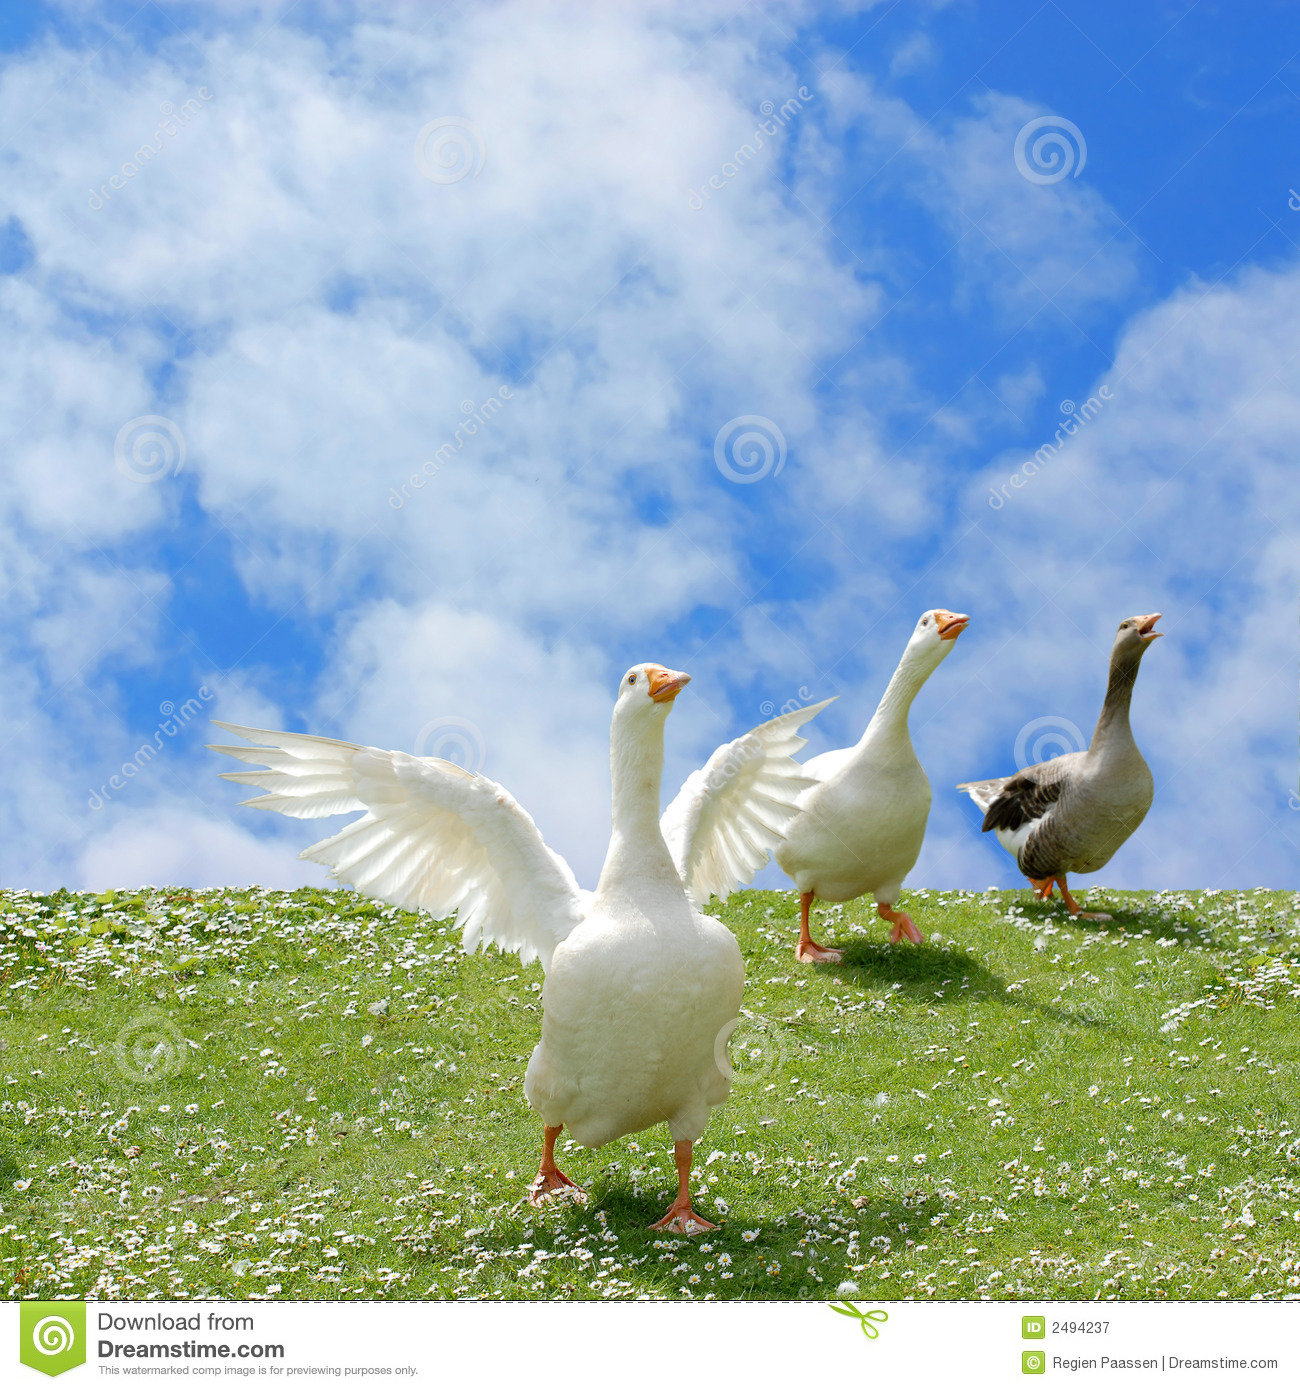 http://thumbs.dreamstime.com/z/wild-goose-chase-2494237.jpg